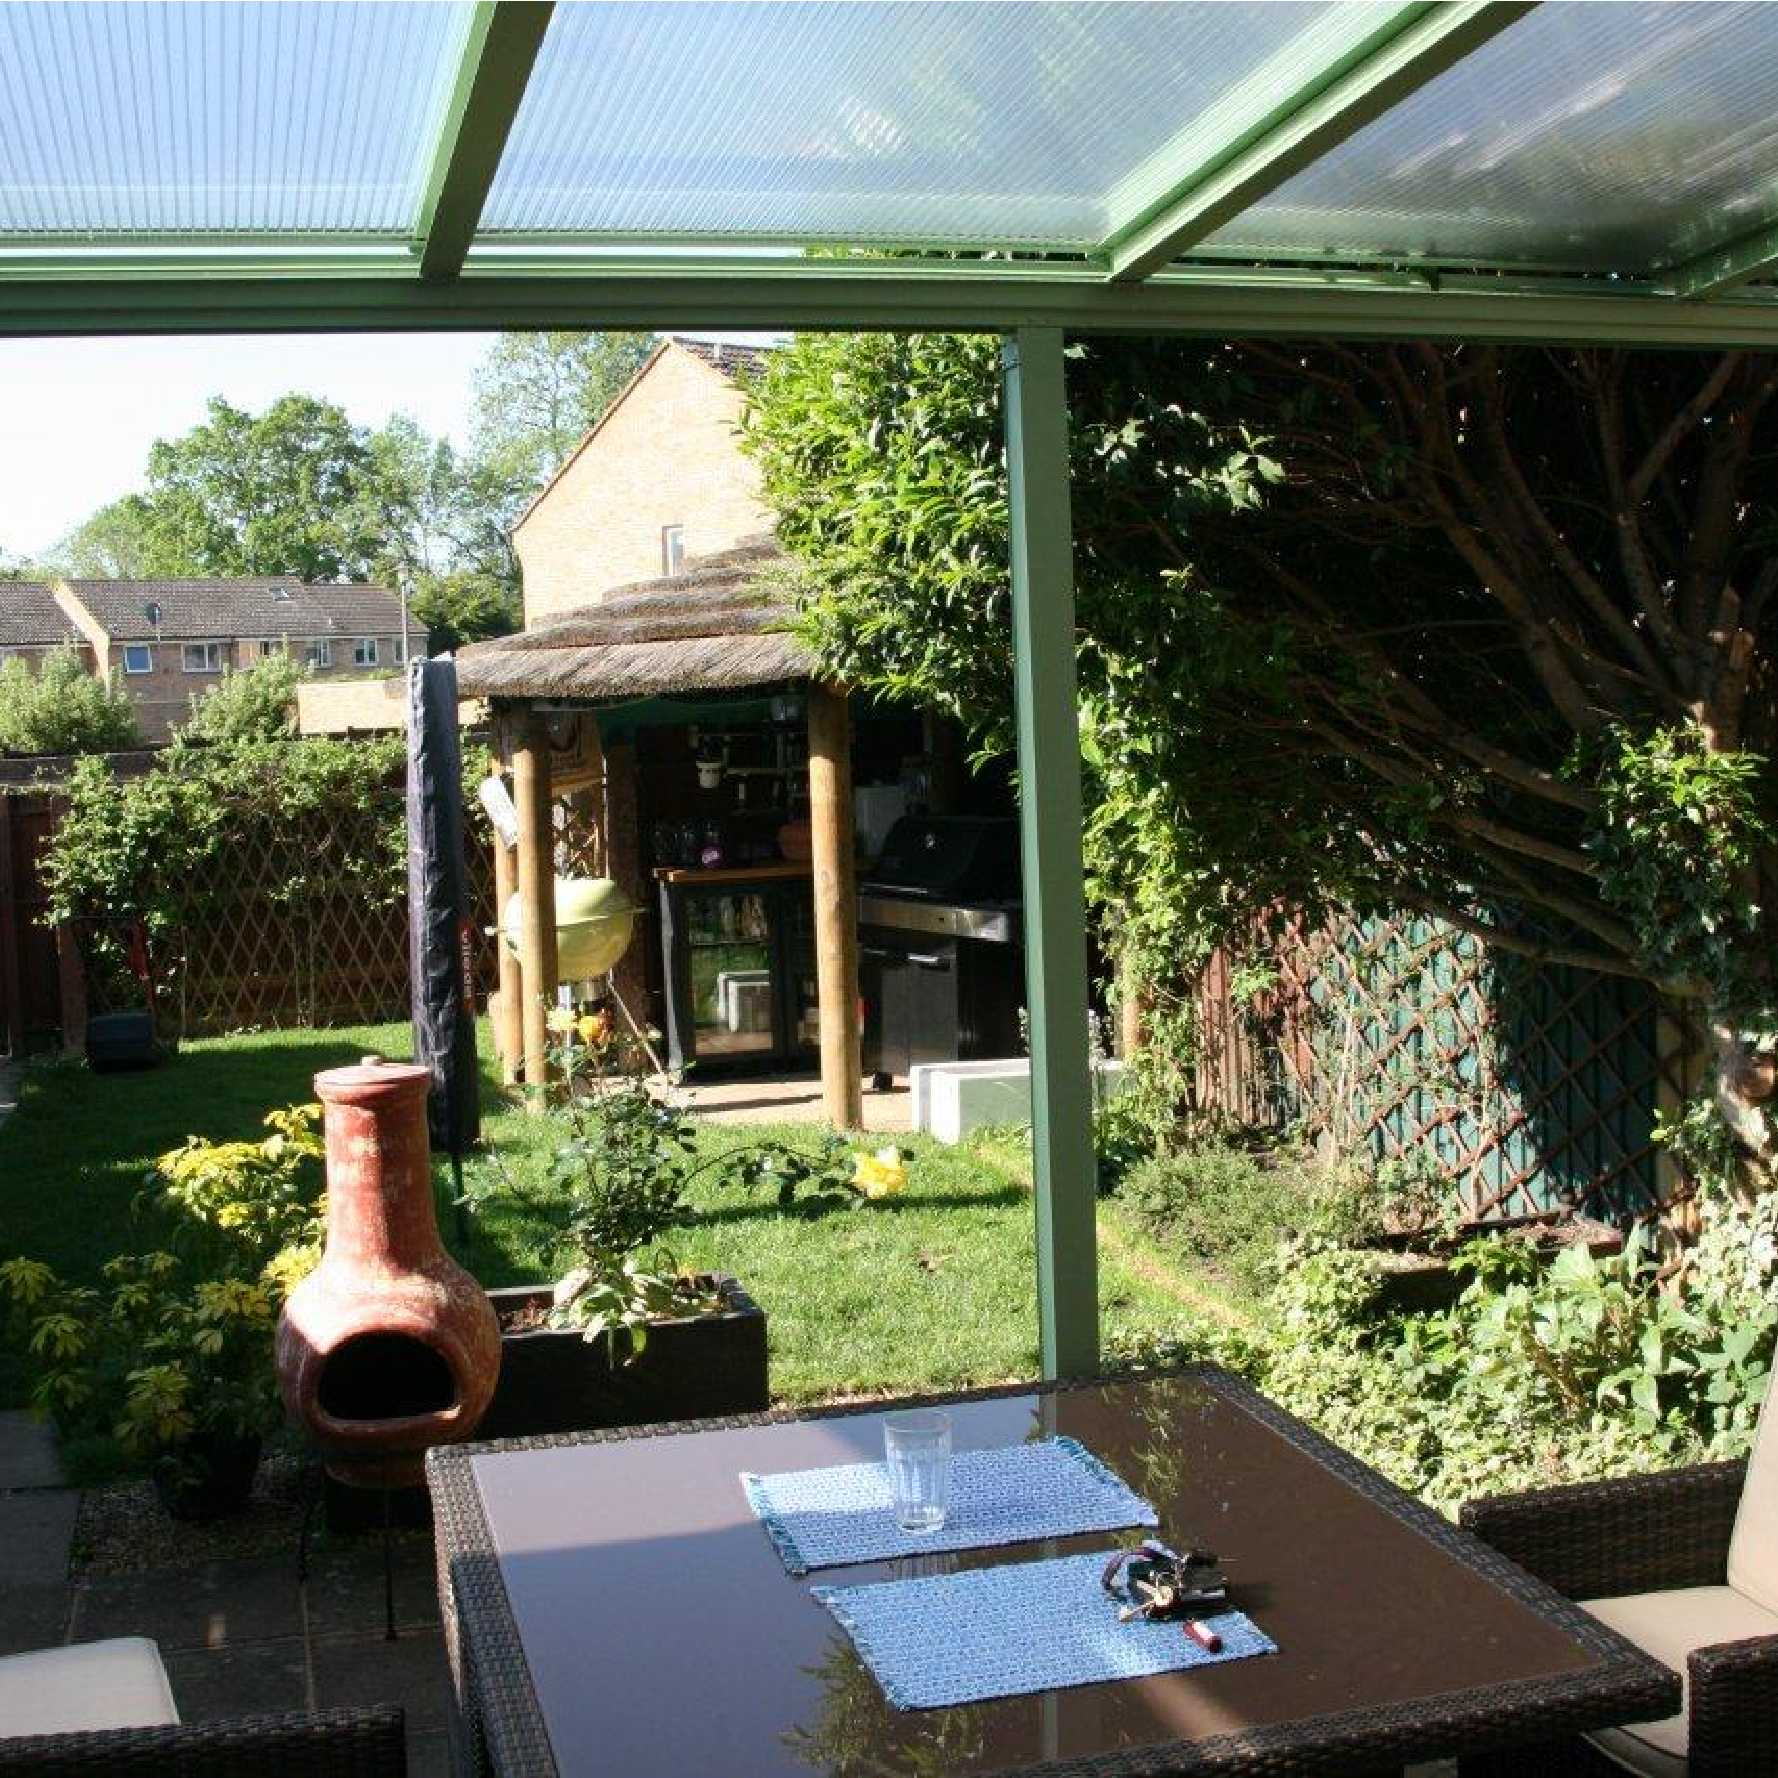 Affordable Omega Smart Lean-To Canopy with 16mm Polycarbonate Glazing - 5.6m (W) x 4.0m (P), (3) Supporting Posts